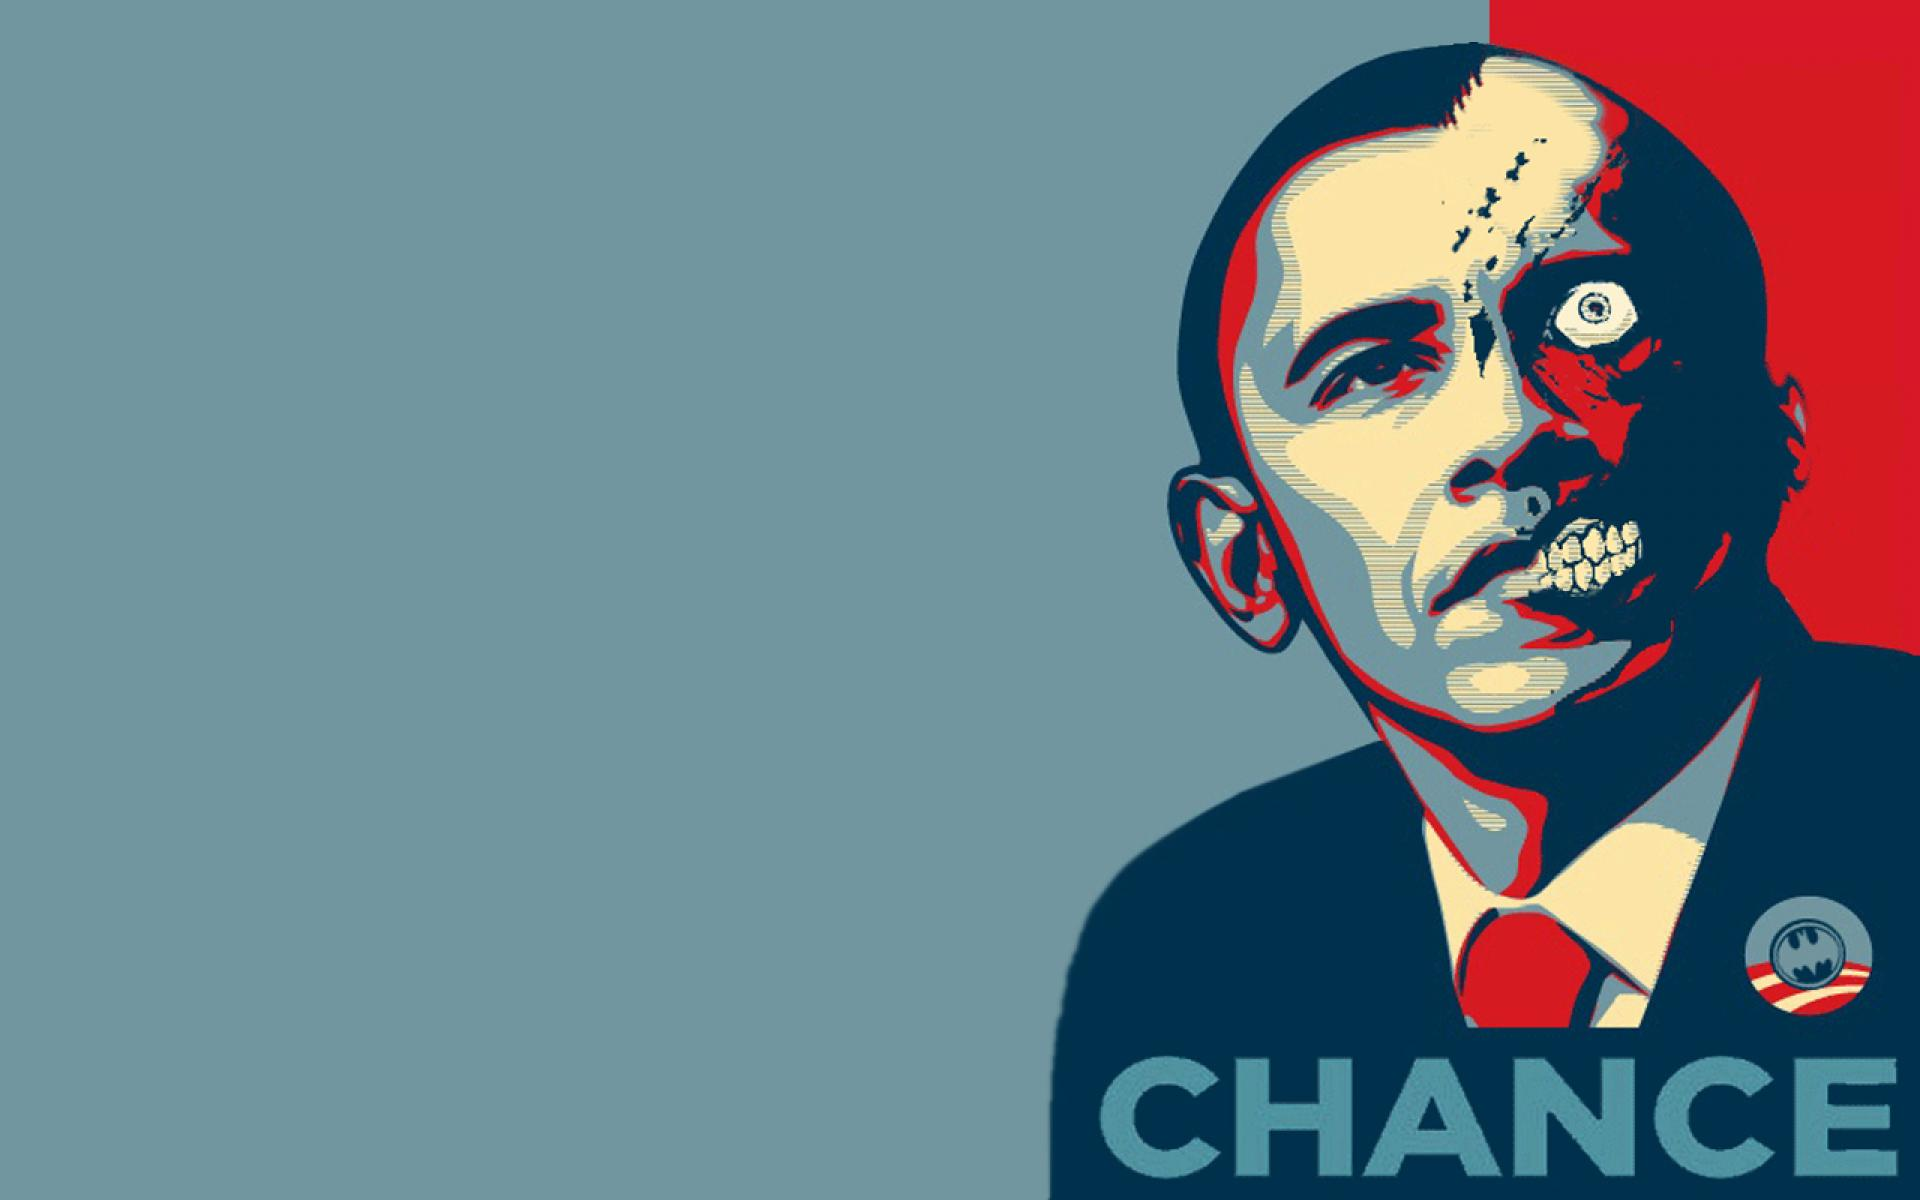 Barack obama two face crossovers presidents wallpaper HQ WALLPAPER 1920x1200